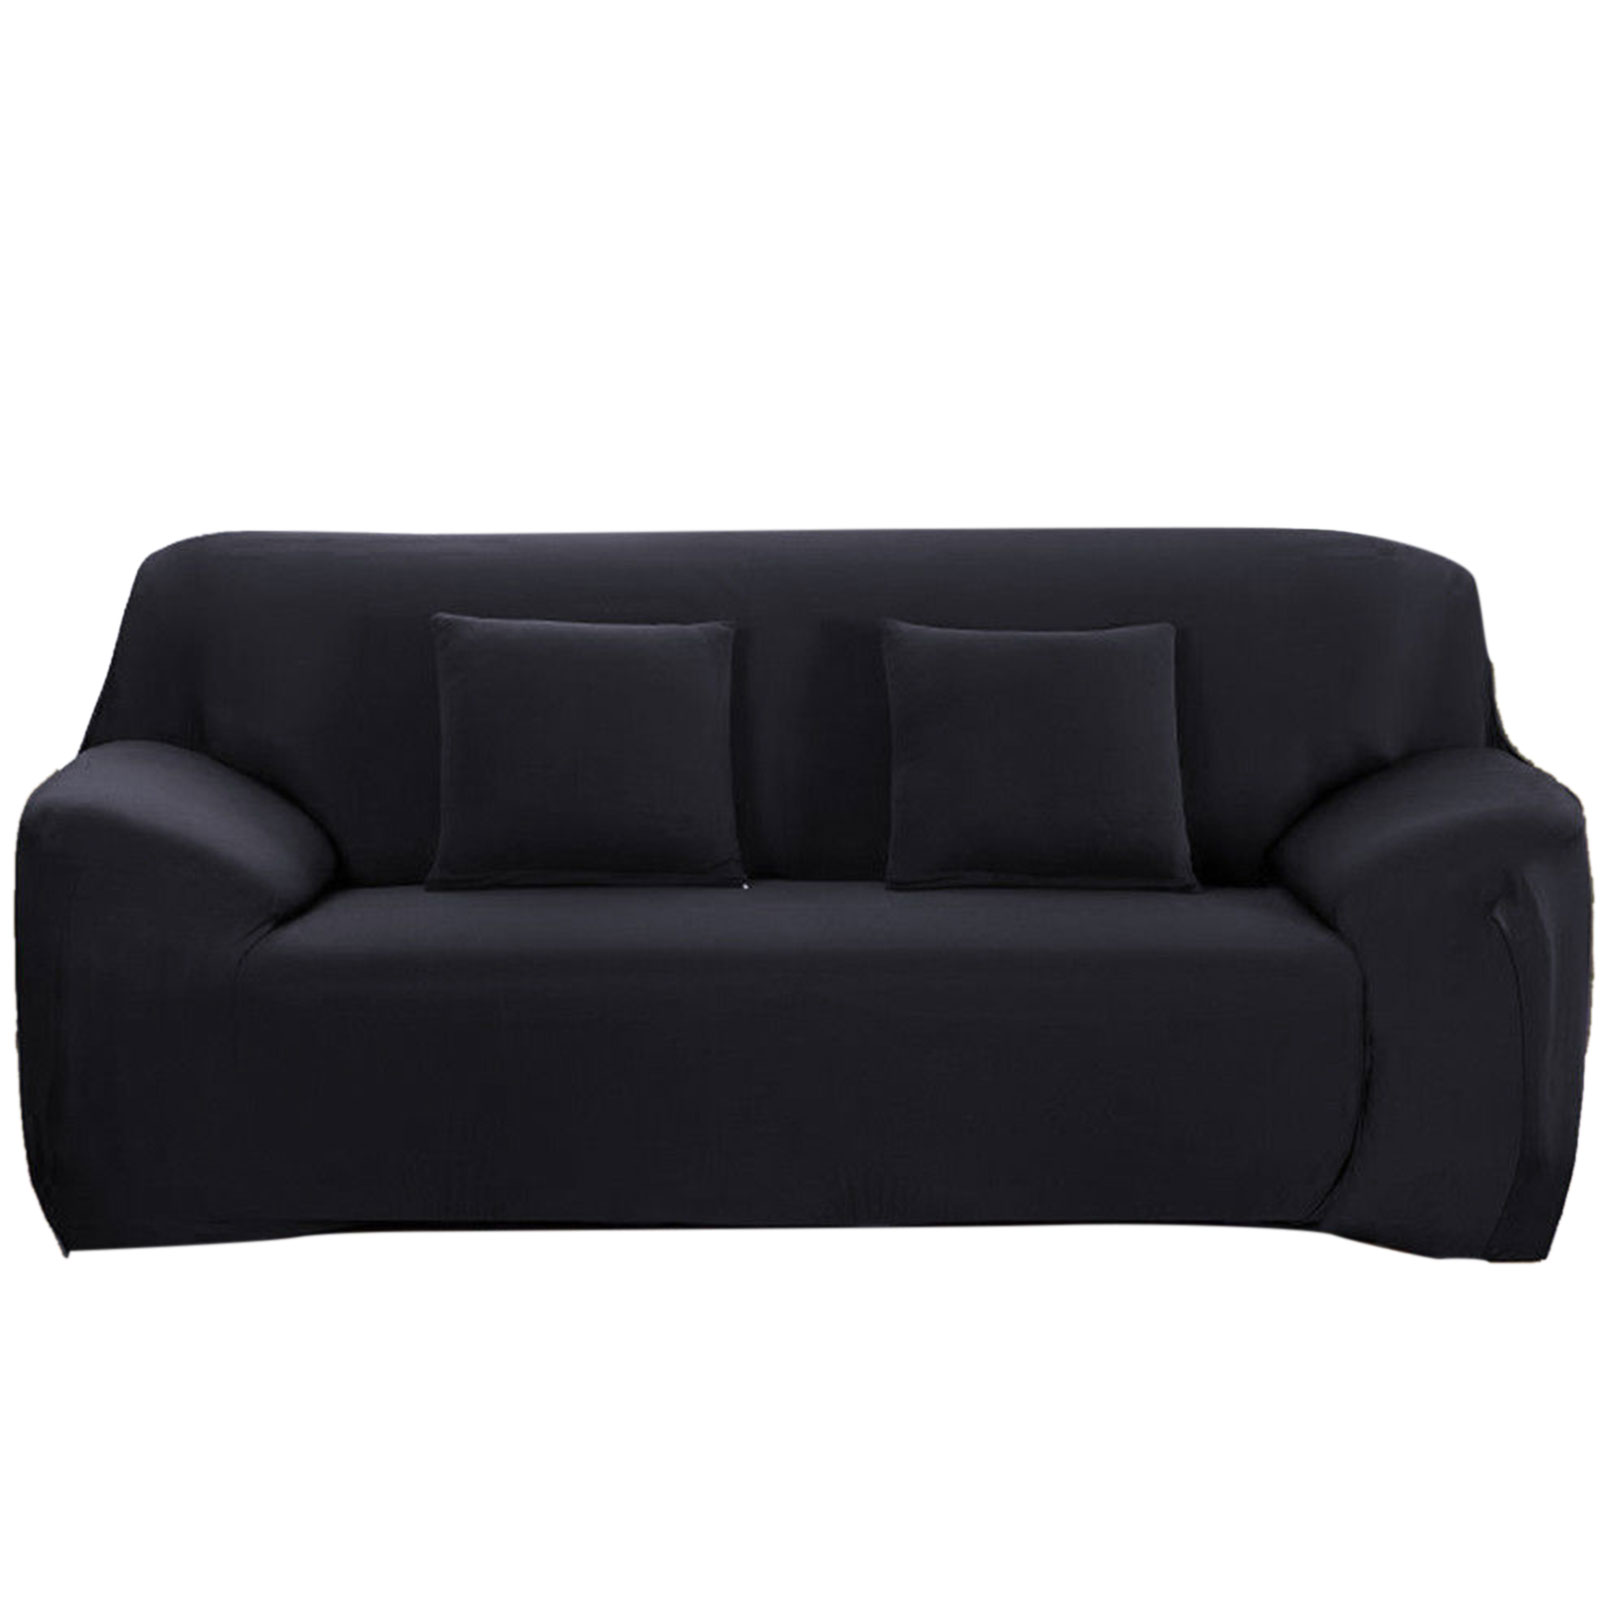 Super Soft Fabric Slipcover Couch Cover 2 Seater Couch